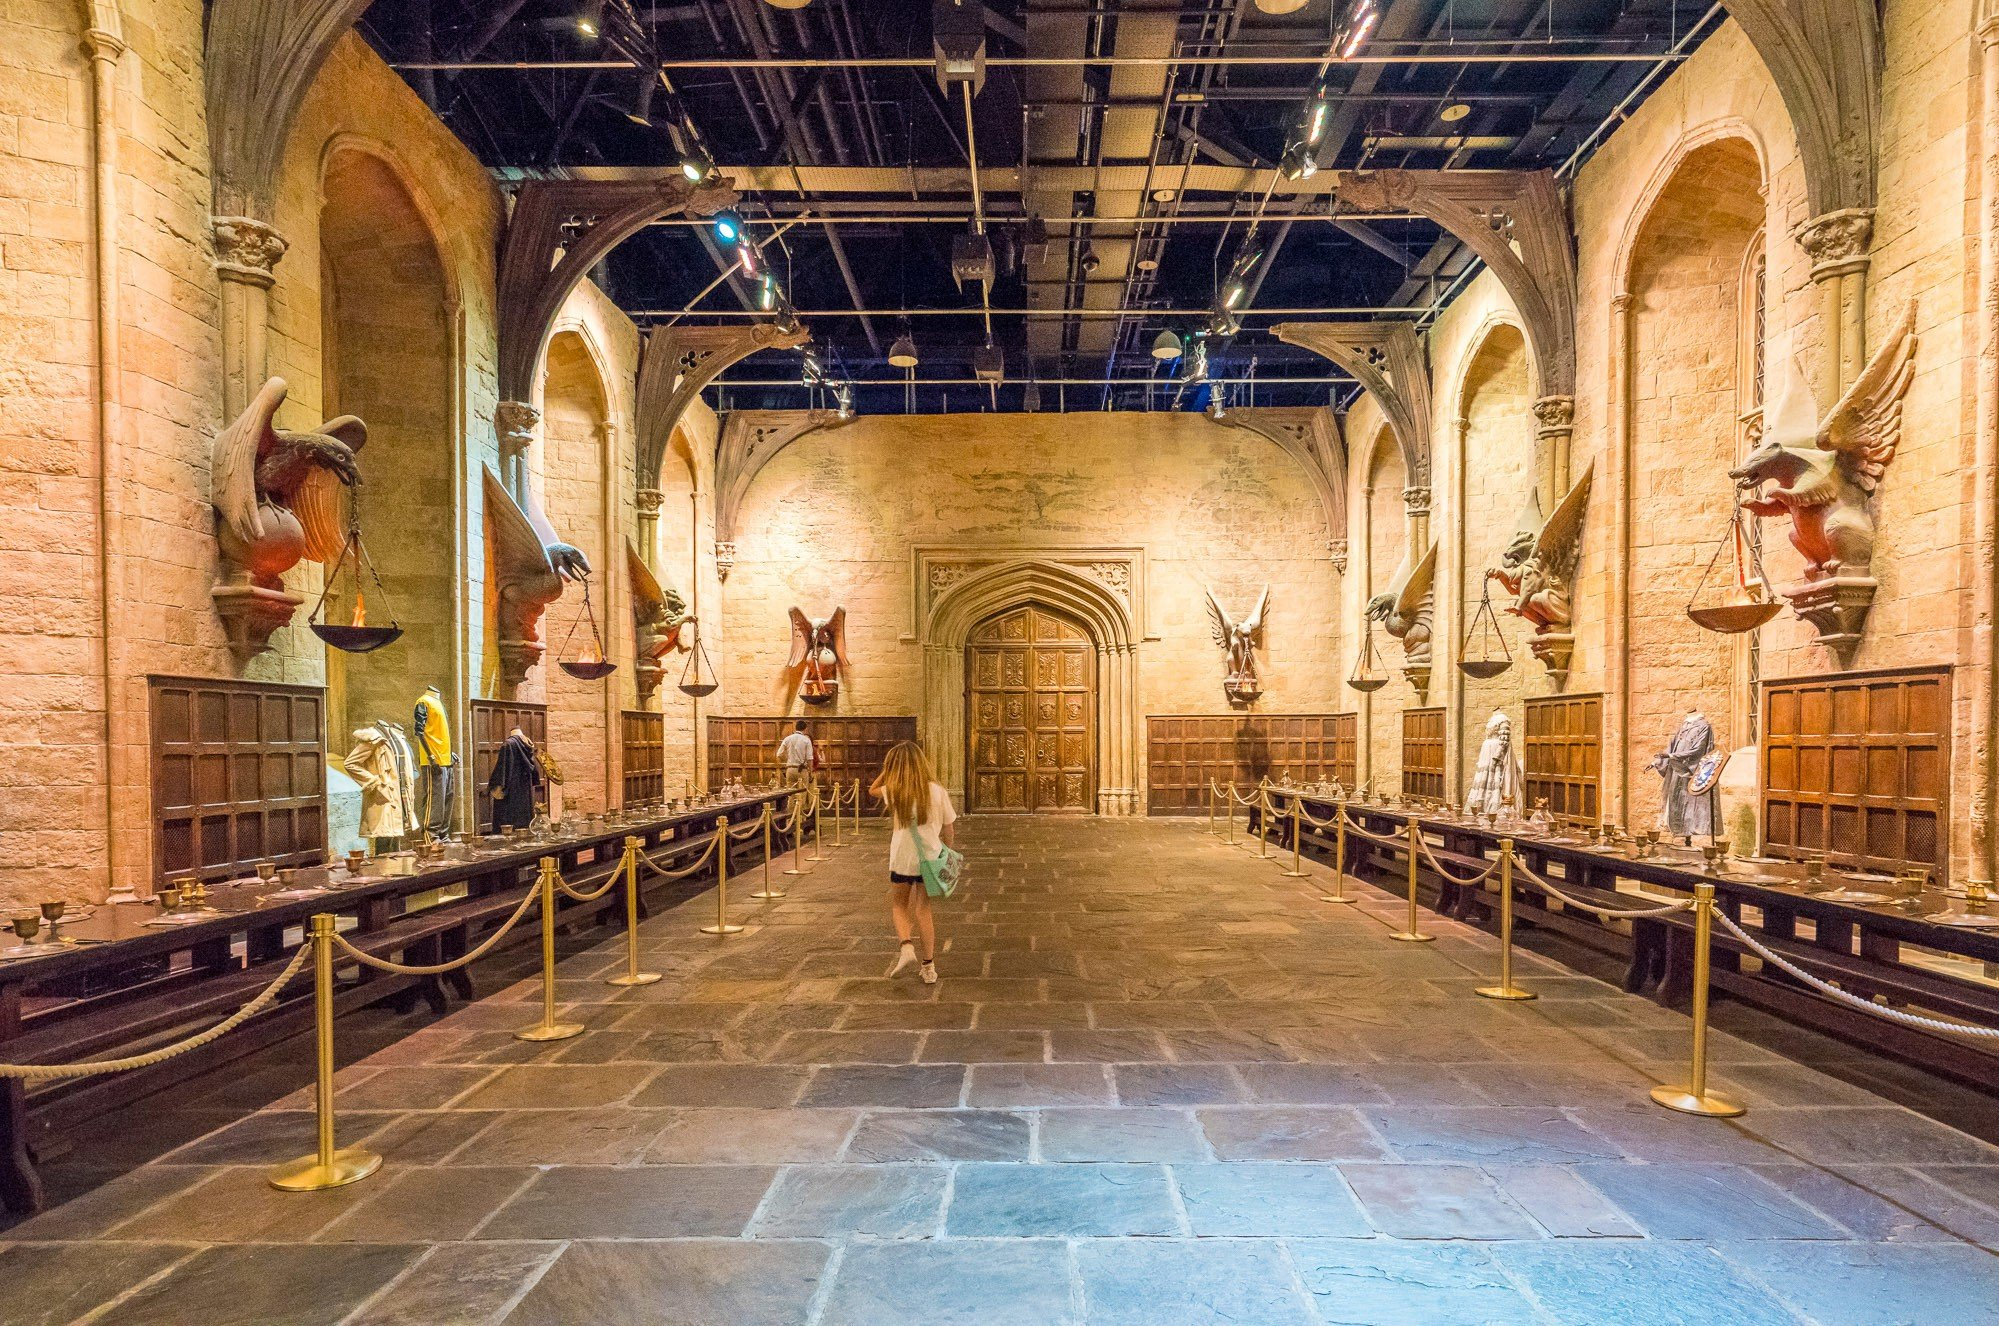 See why the Warner Bros. Studios Tour London is one of the very best attractions in town for Harry Potter fans (or any movie enthusiast).